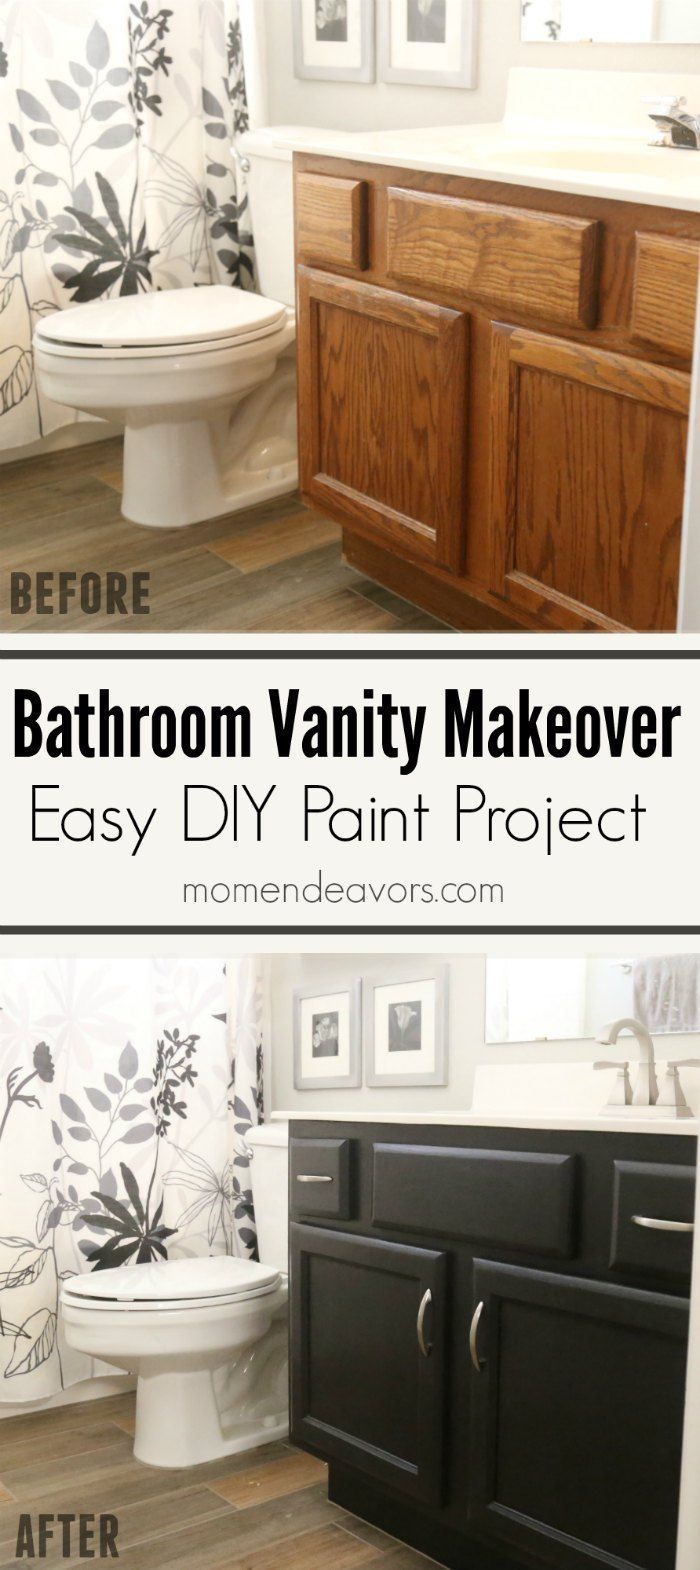 Bathroom Vanity Makeover – Easy DIY Home Paint Project. Paint ...